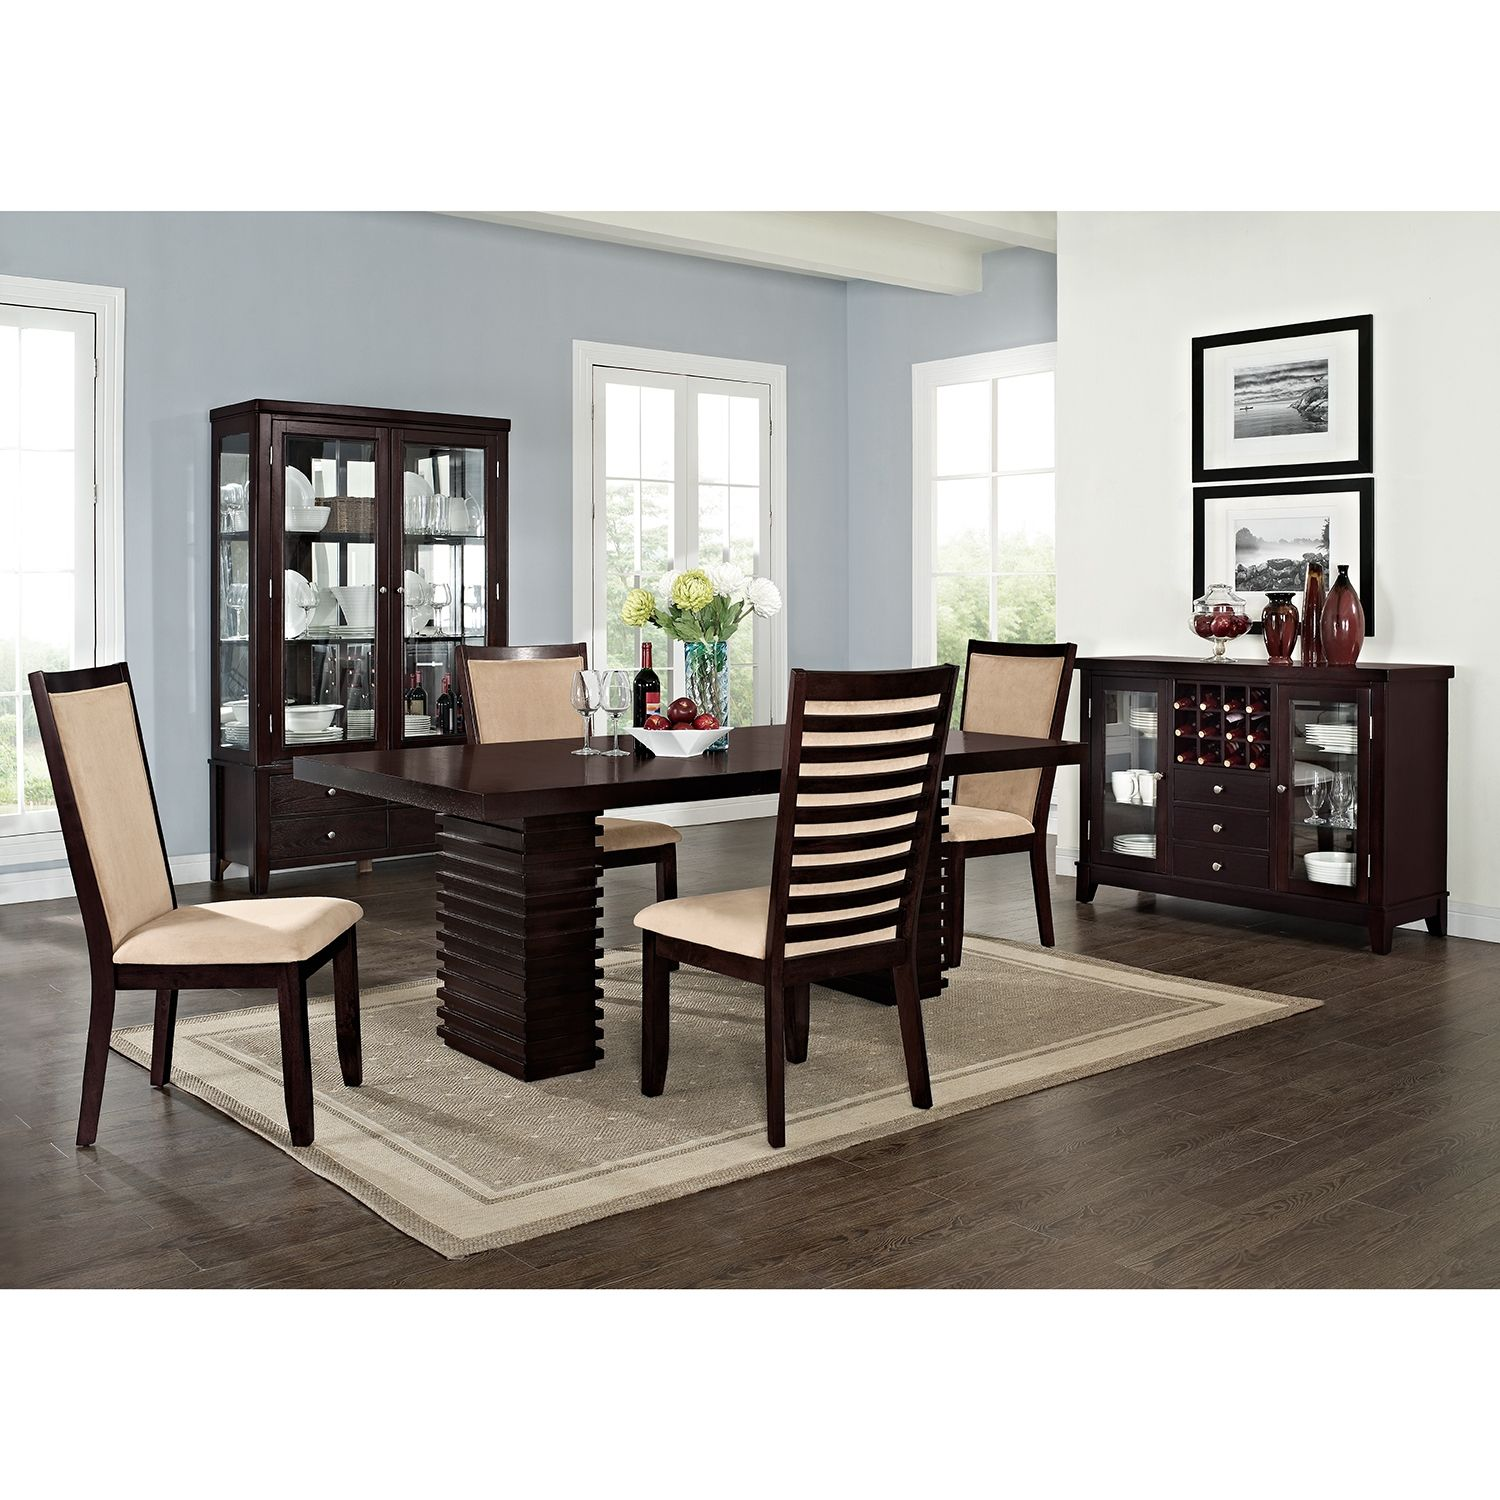 Paragon Dining Room Dining Table Value City Furniture Dining Room Suites Dining Room Bench Dining Room Furniture